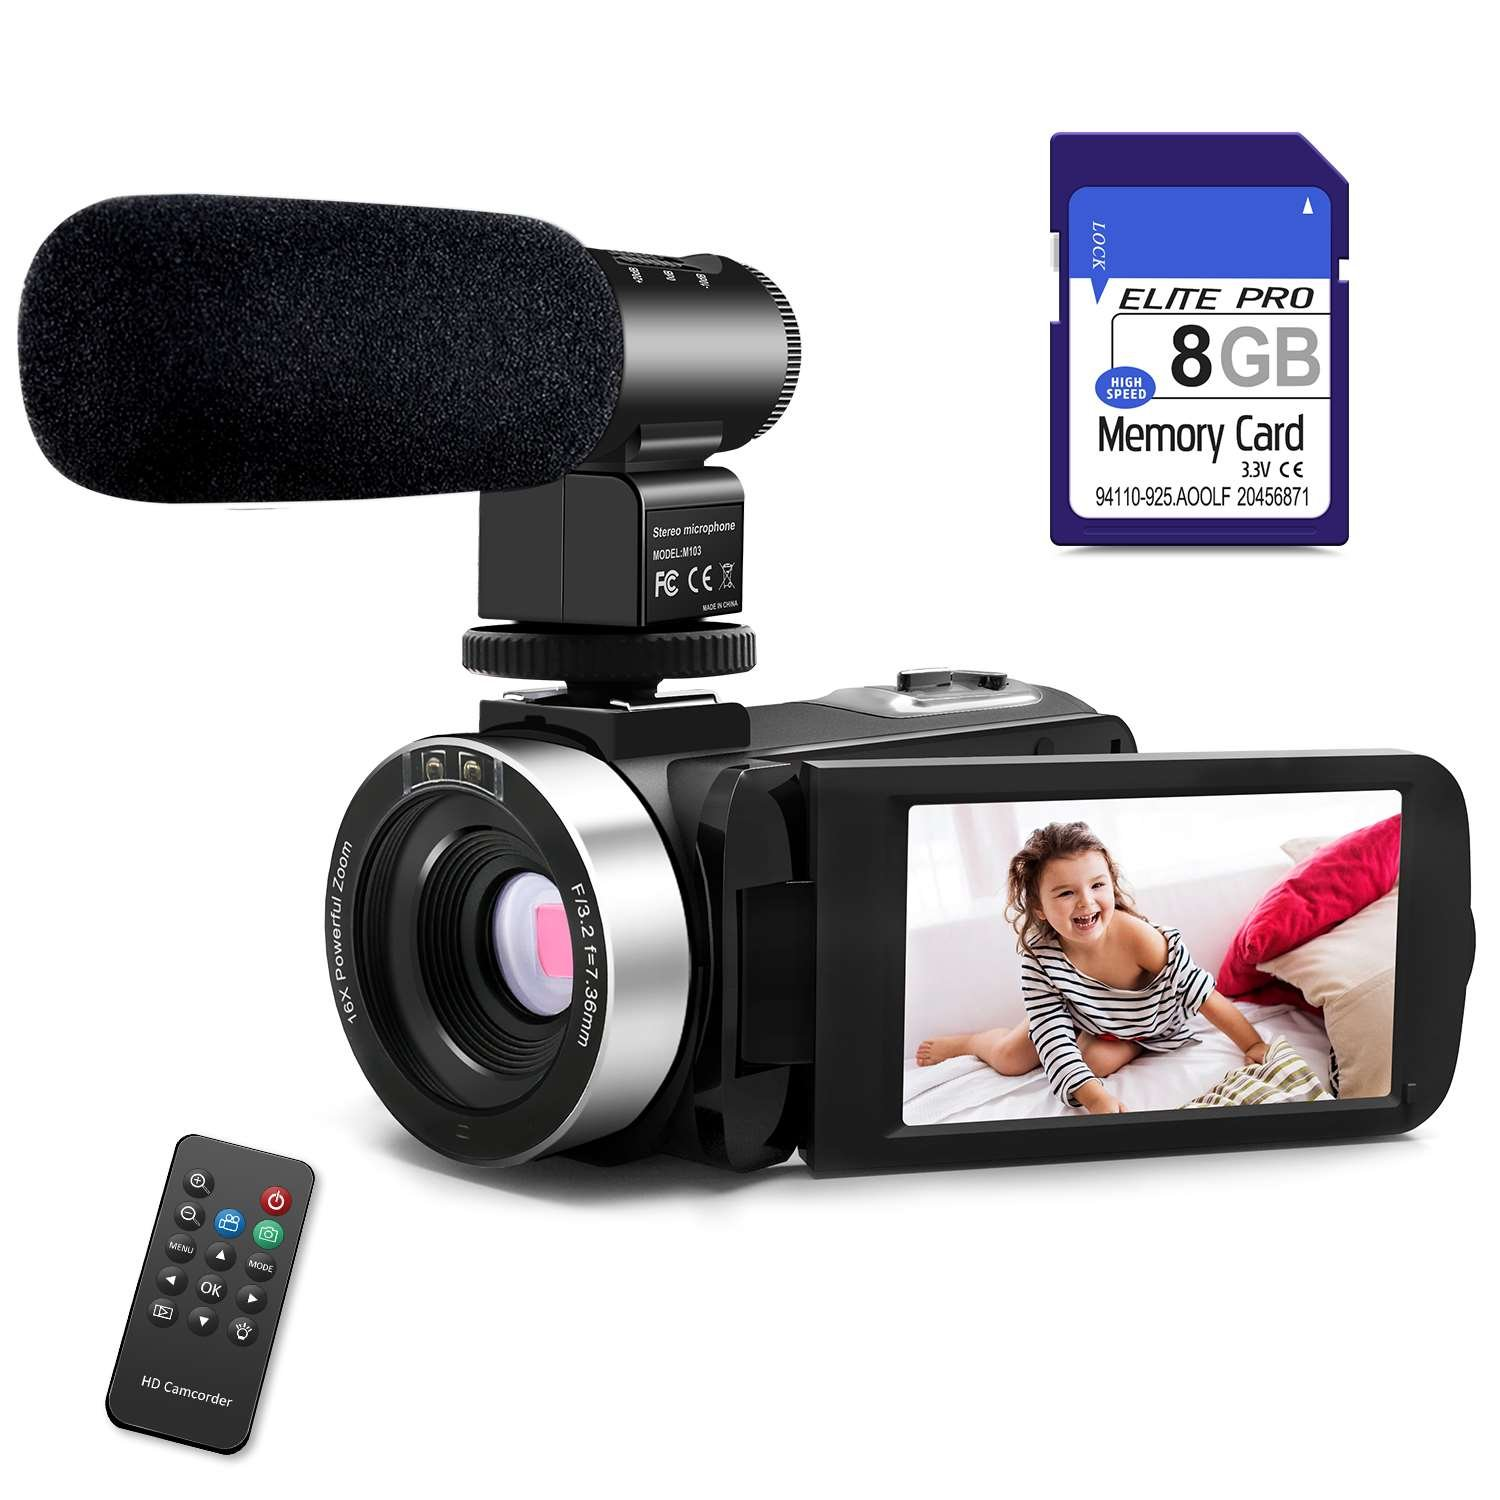 Camera Camcorders AOOE HD Recorder 1080P 24 MP 16X Video Camera with External Microphone 3.0 Inch LCD Stabilization With 270 Degree Rotation Screen Powerful Scalability Camera Bag Lithium Battery